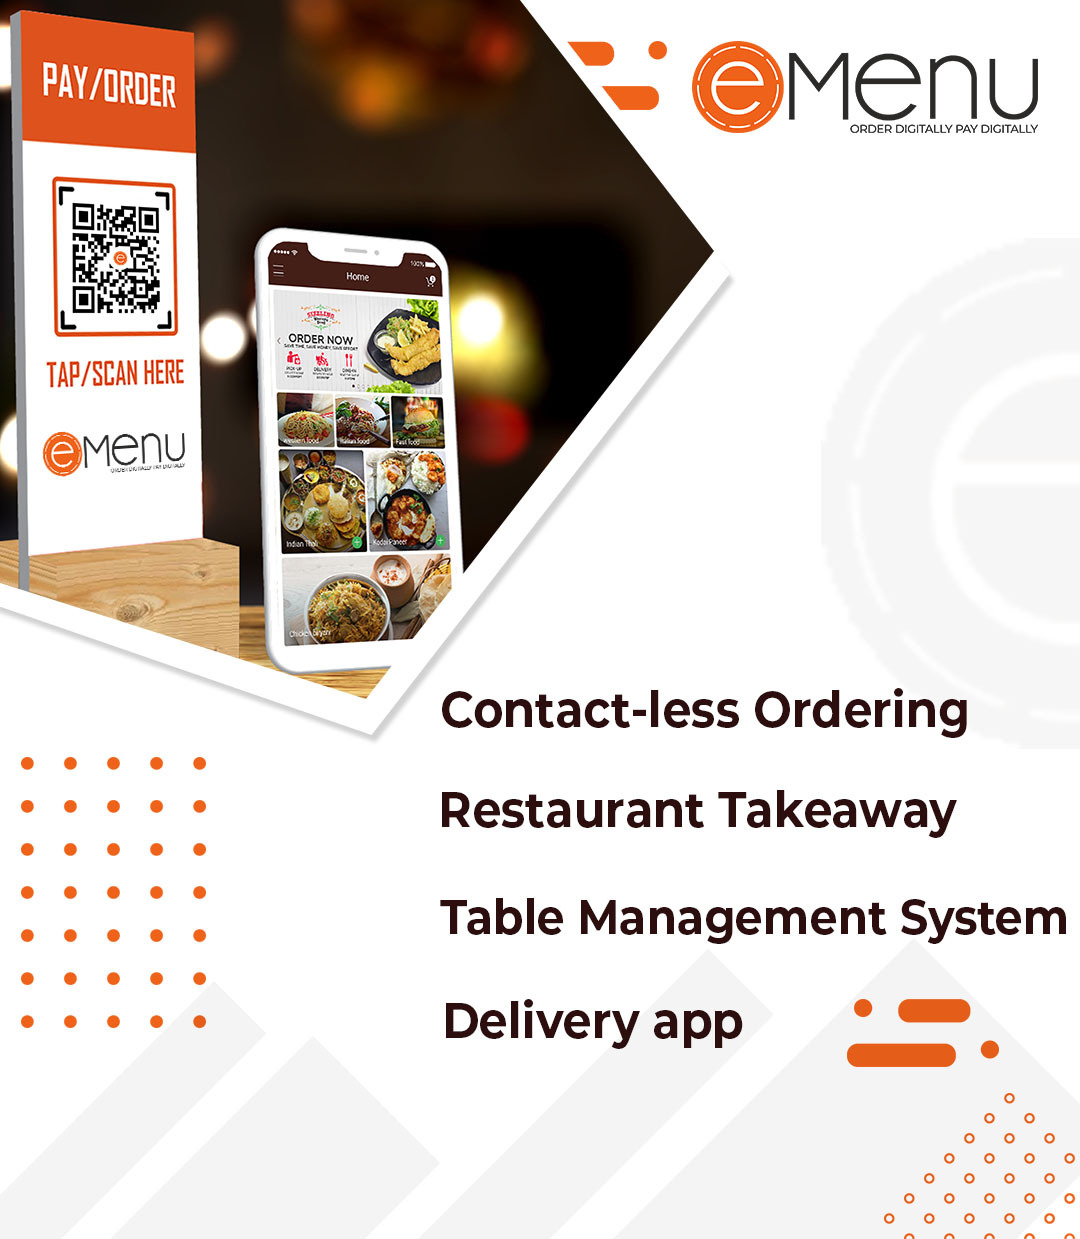 Grow your restaurant business with a automated ordering and management system